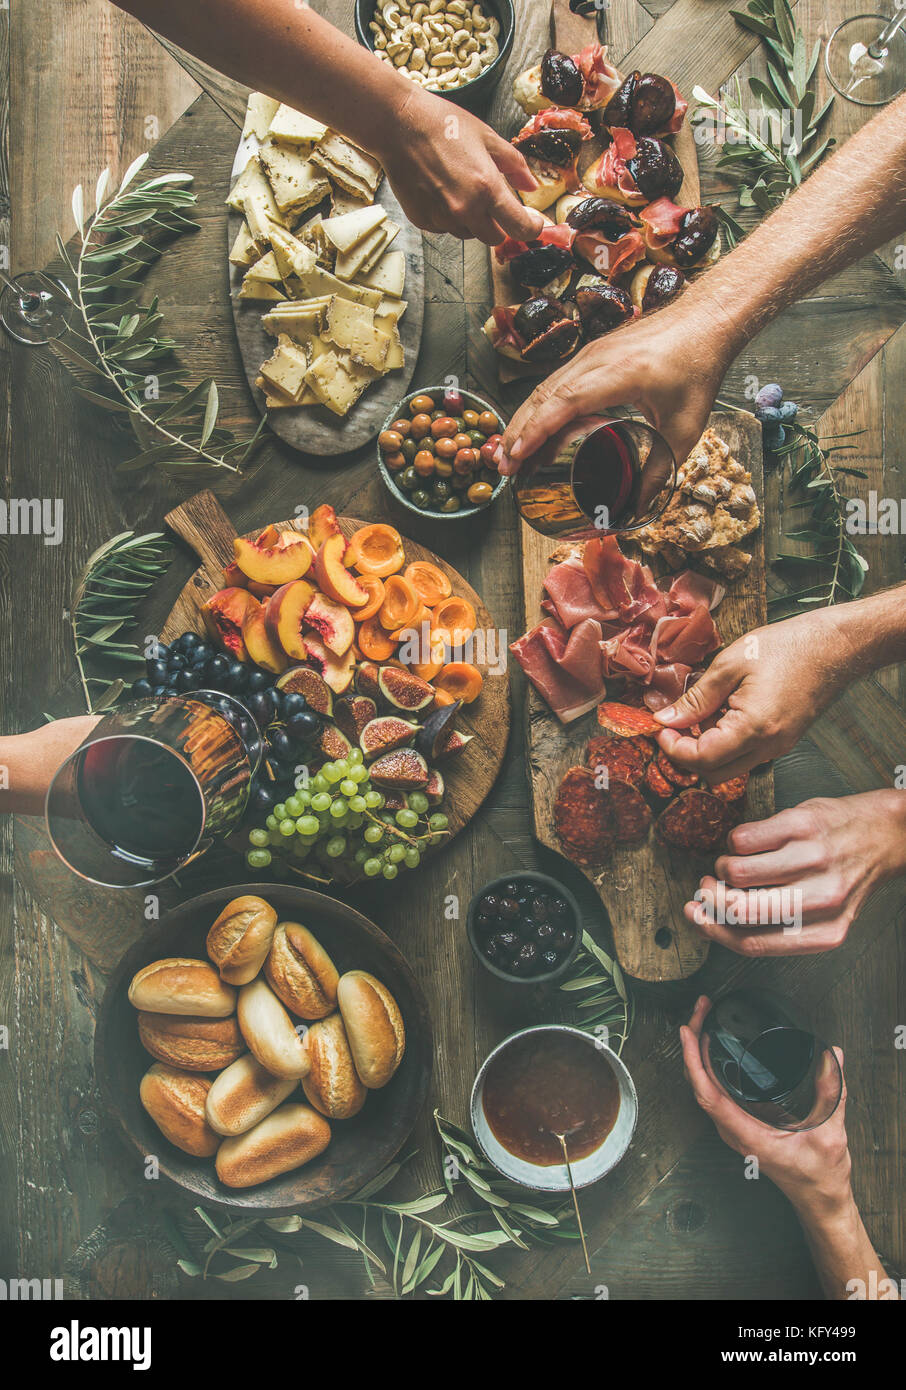 Flat-lay of friends hands eating and drinking together - Stock Image